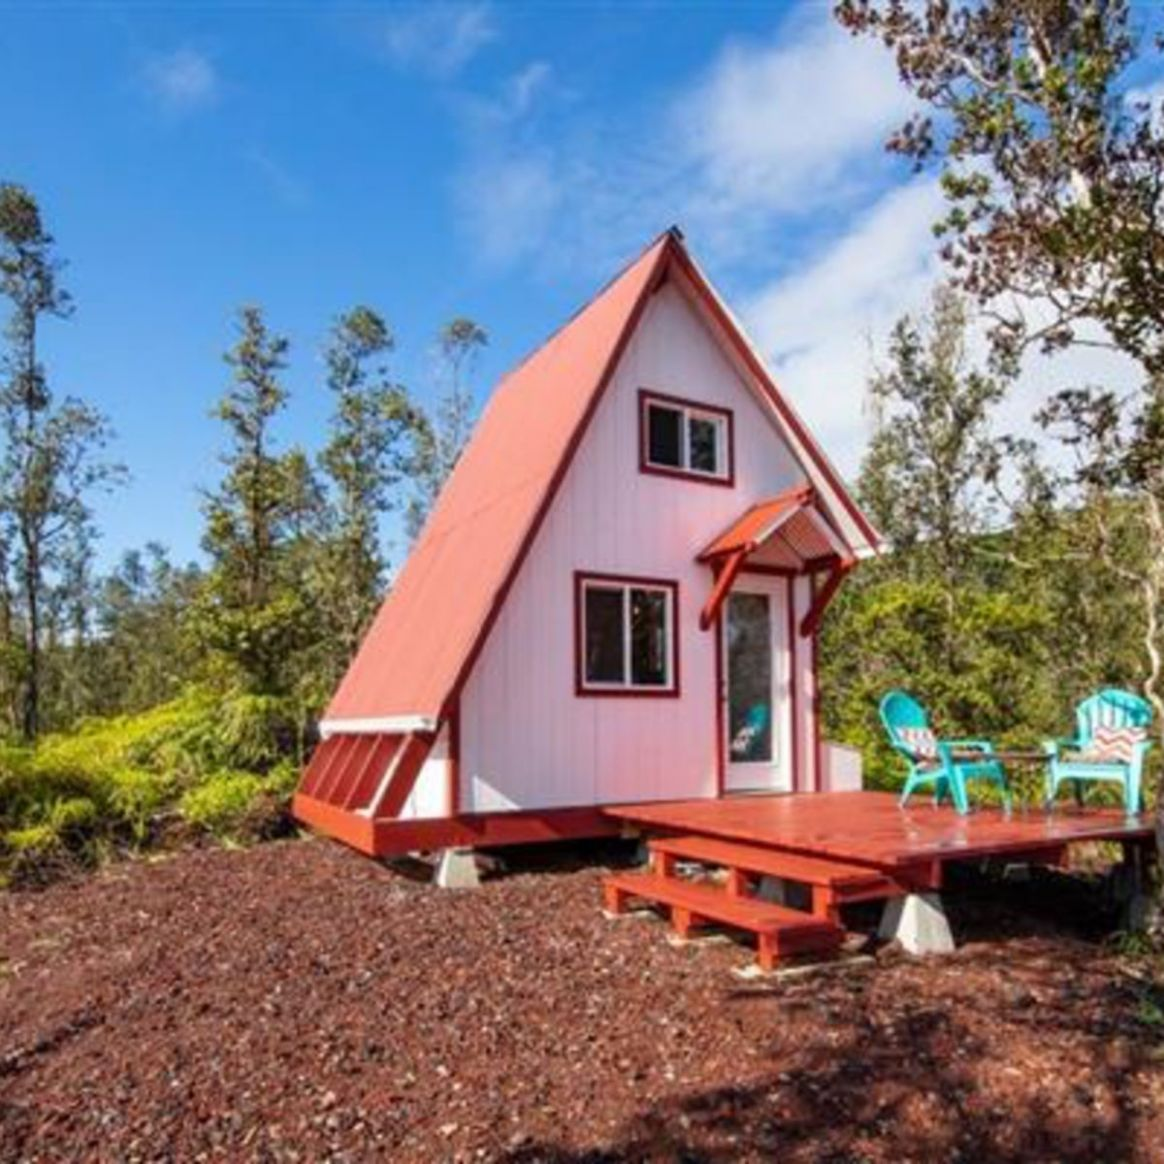 Off grid Hawaii Home! - Tiny House for Sale in Pahoa, Hawaii - Tiny House  Listings